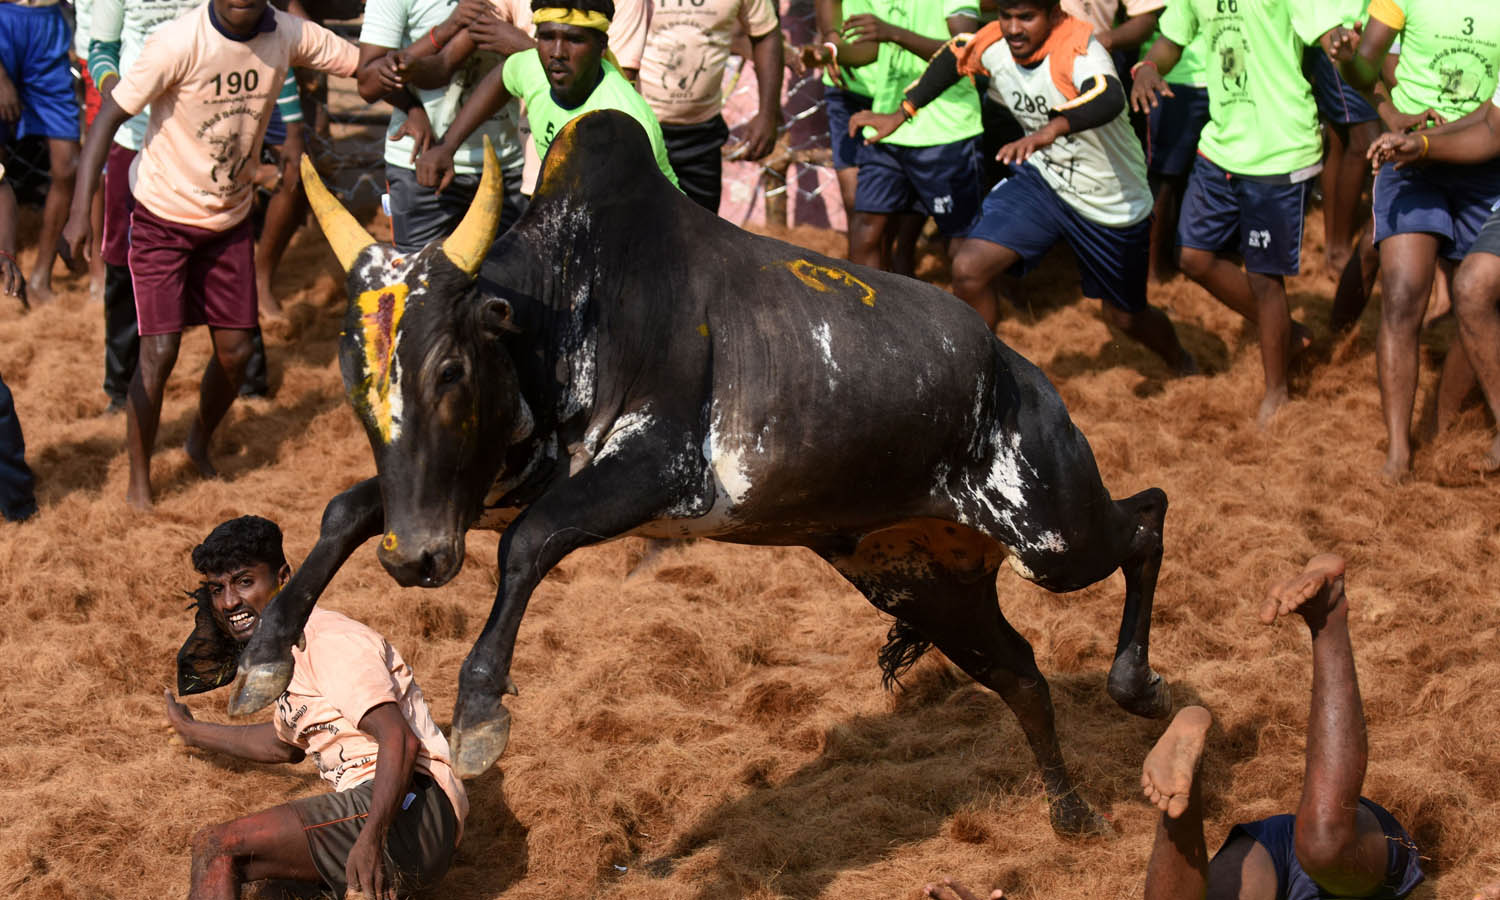 Jallikattu: Three men gored to death watching bull-taming event in India